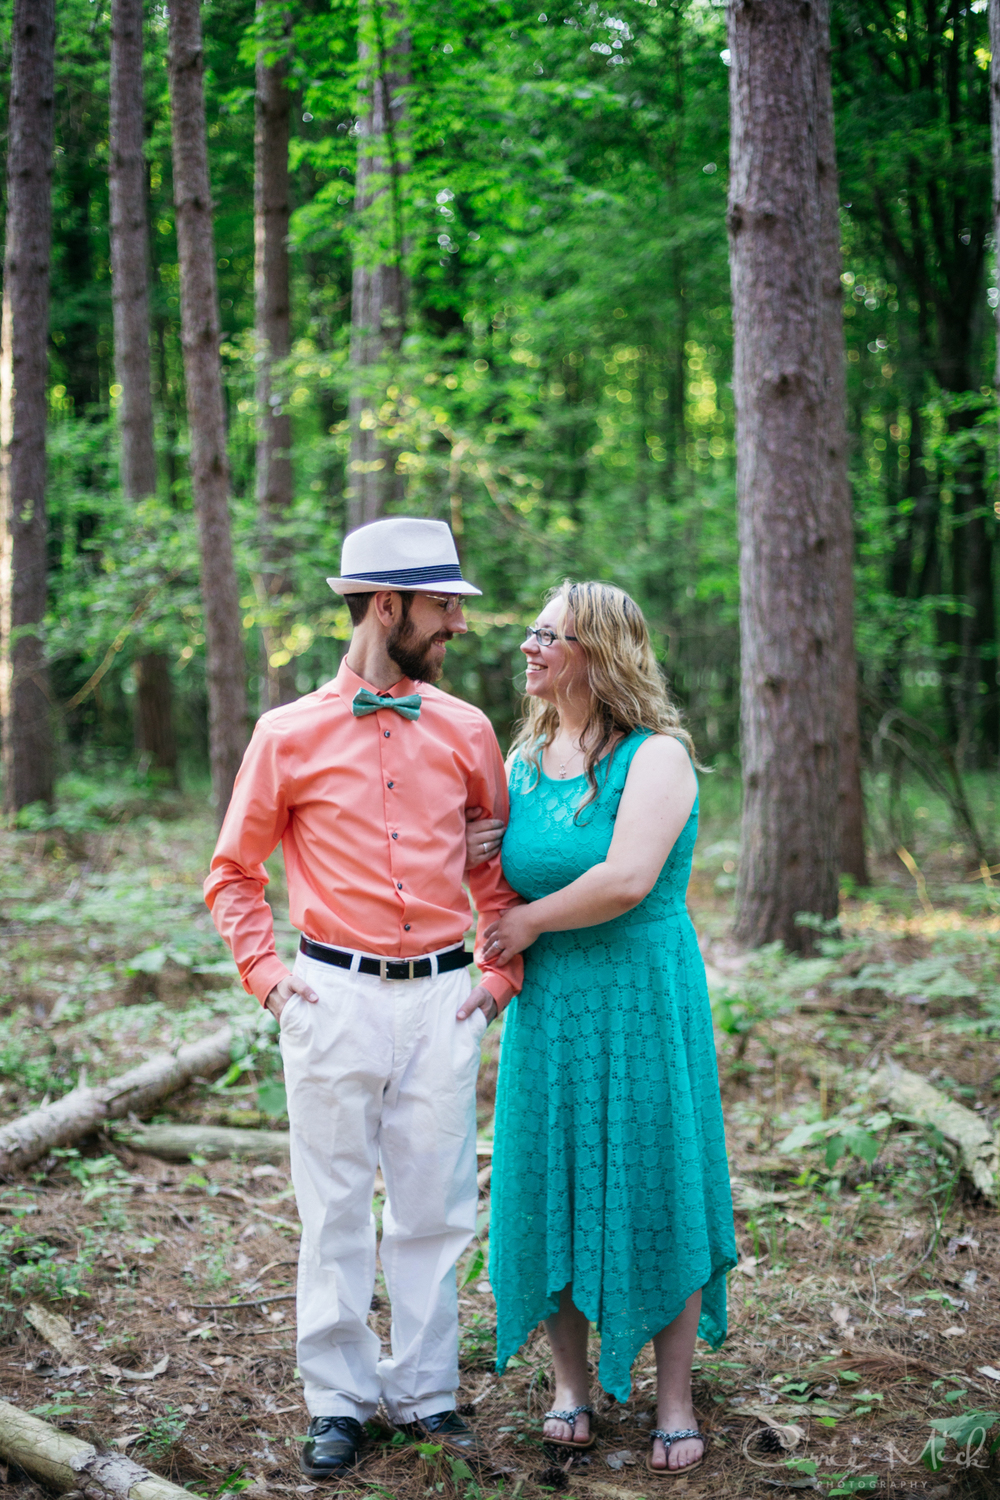 Oak Openings MetroPark Ohio - Peter and Rachel Engaged - Corrie Mick Photography-5.jpg